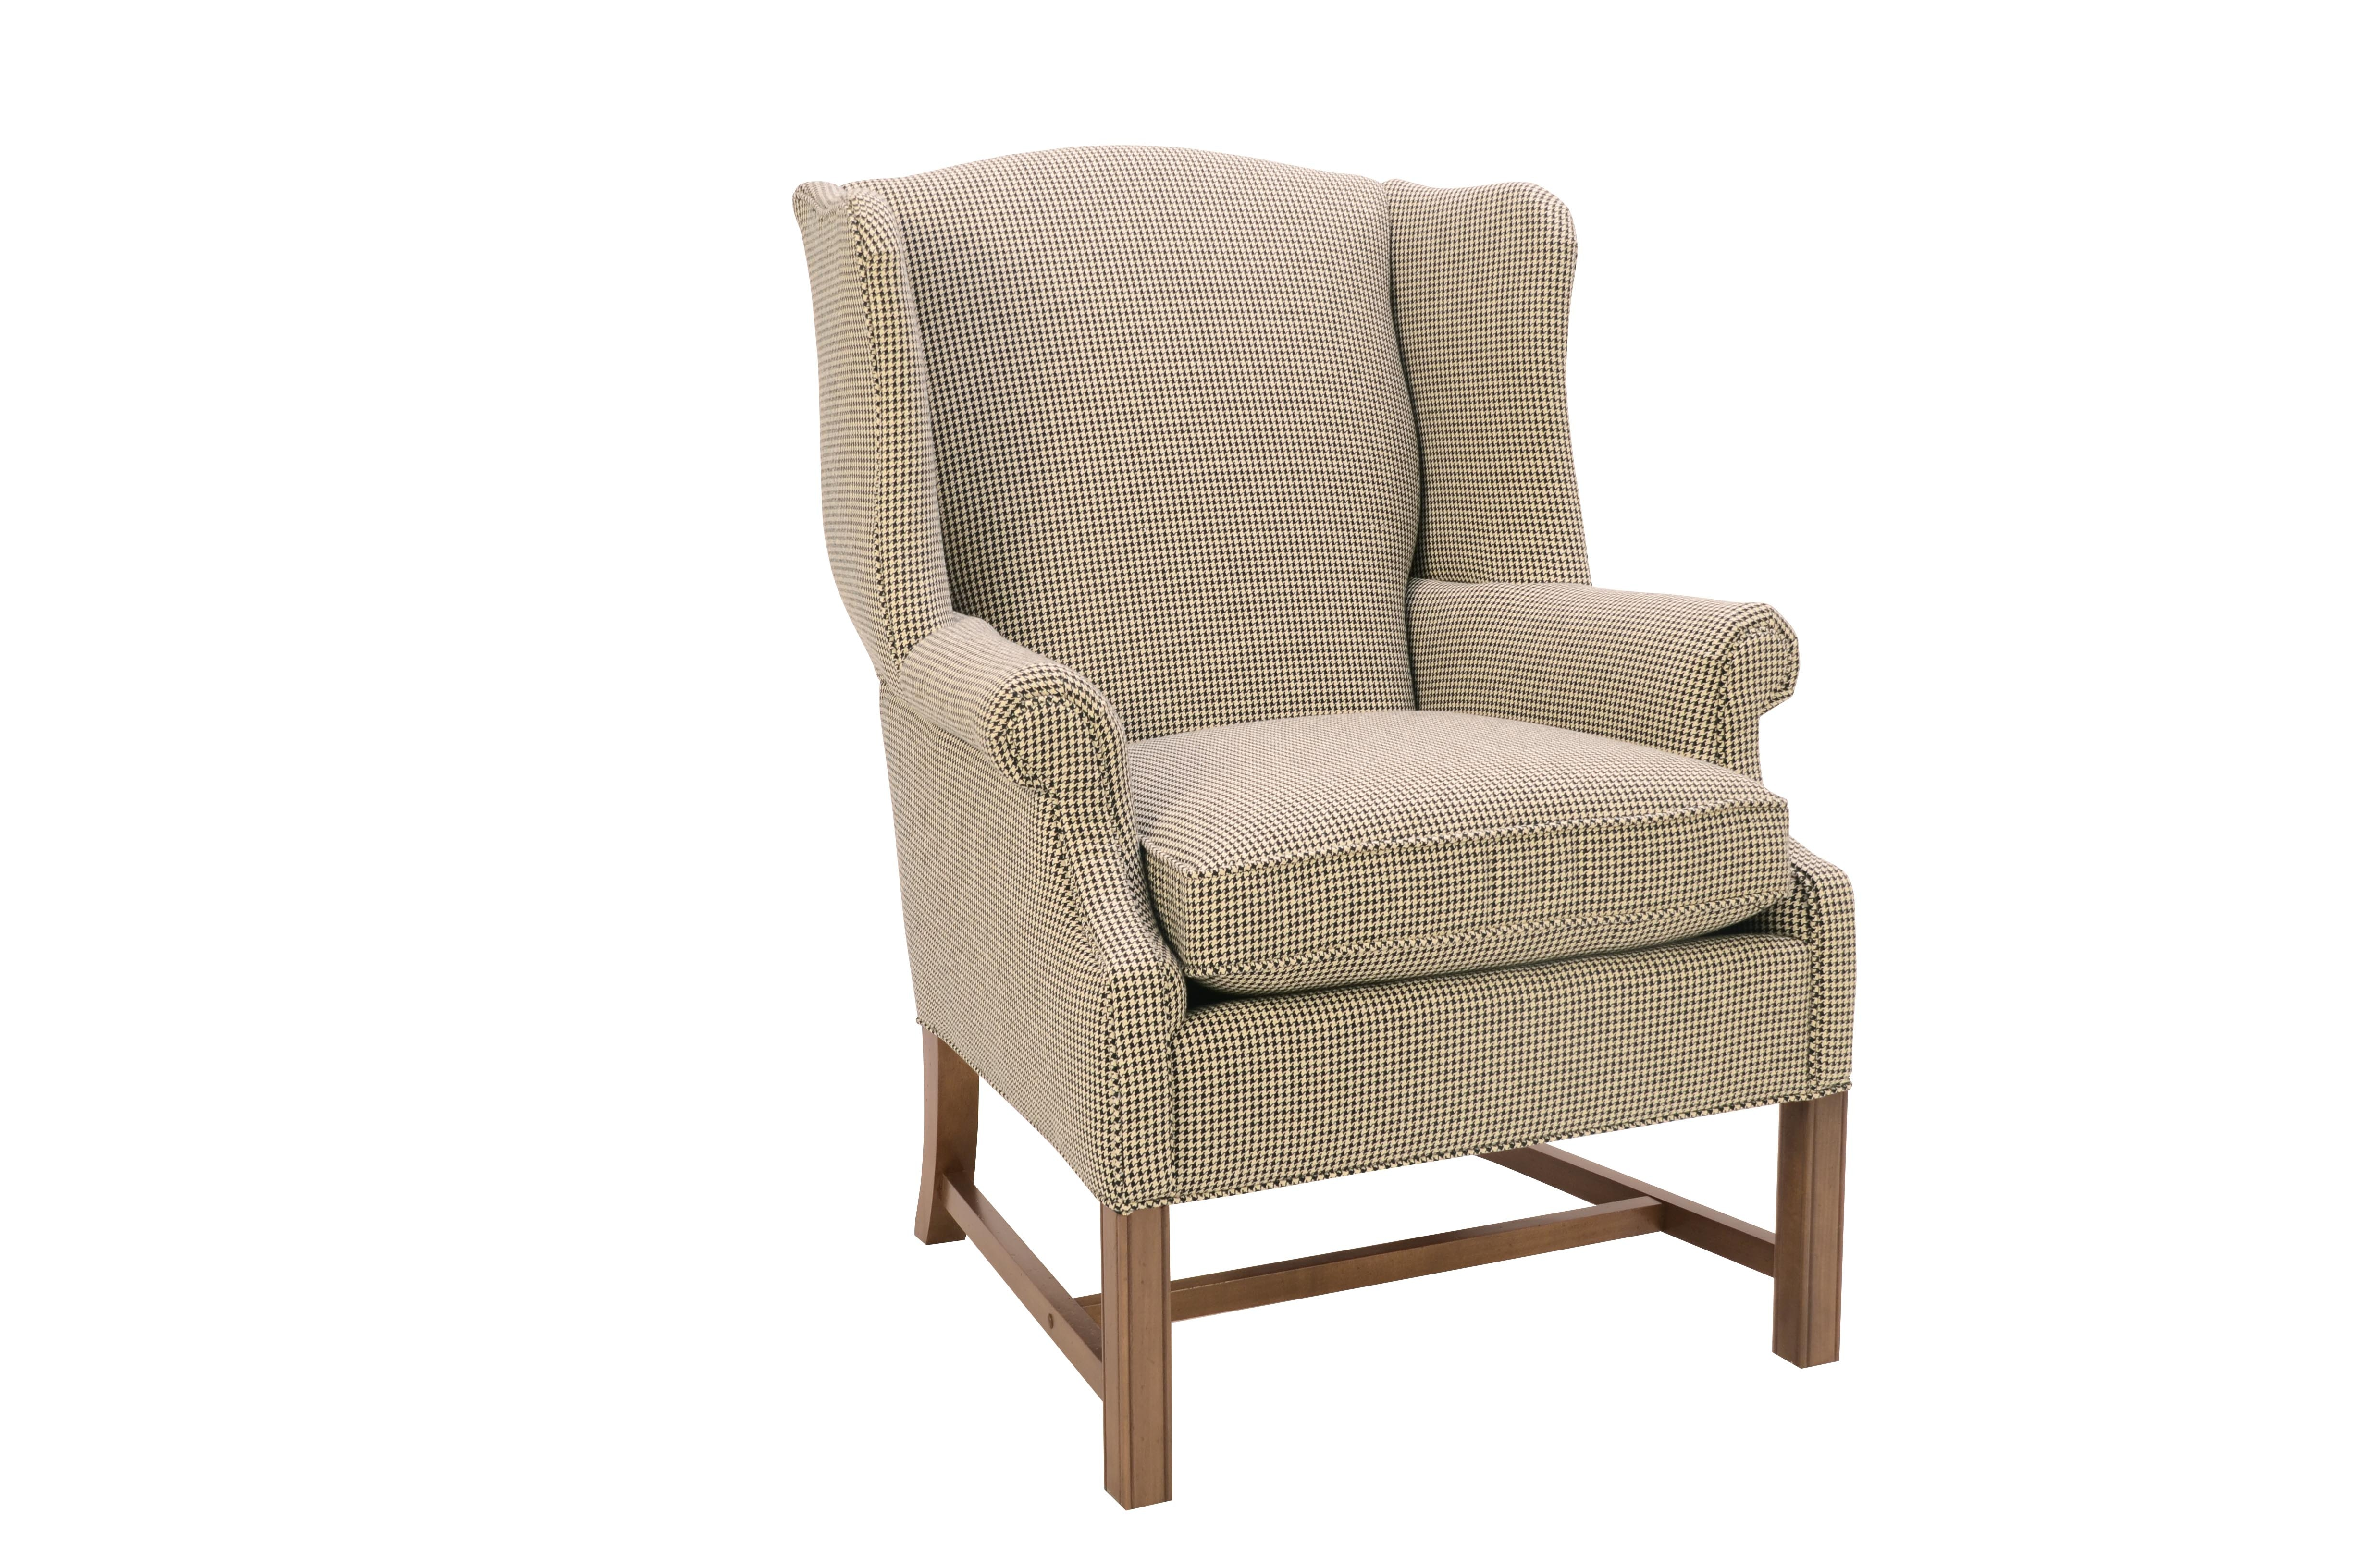 Charmant Featured Product Montgomery Wing Chair NR1033 From Walter E. Smithe  Furniture + Design